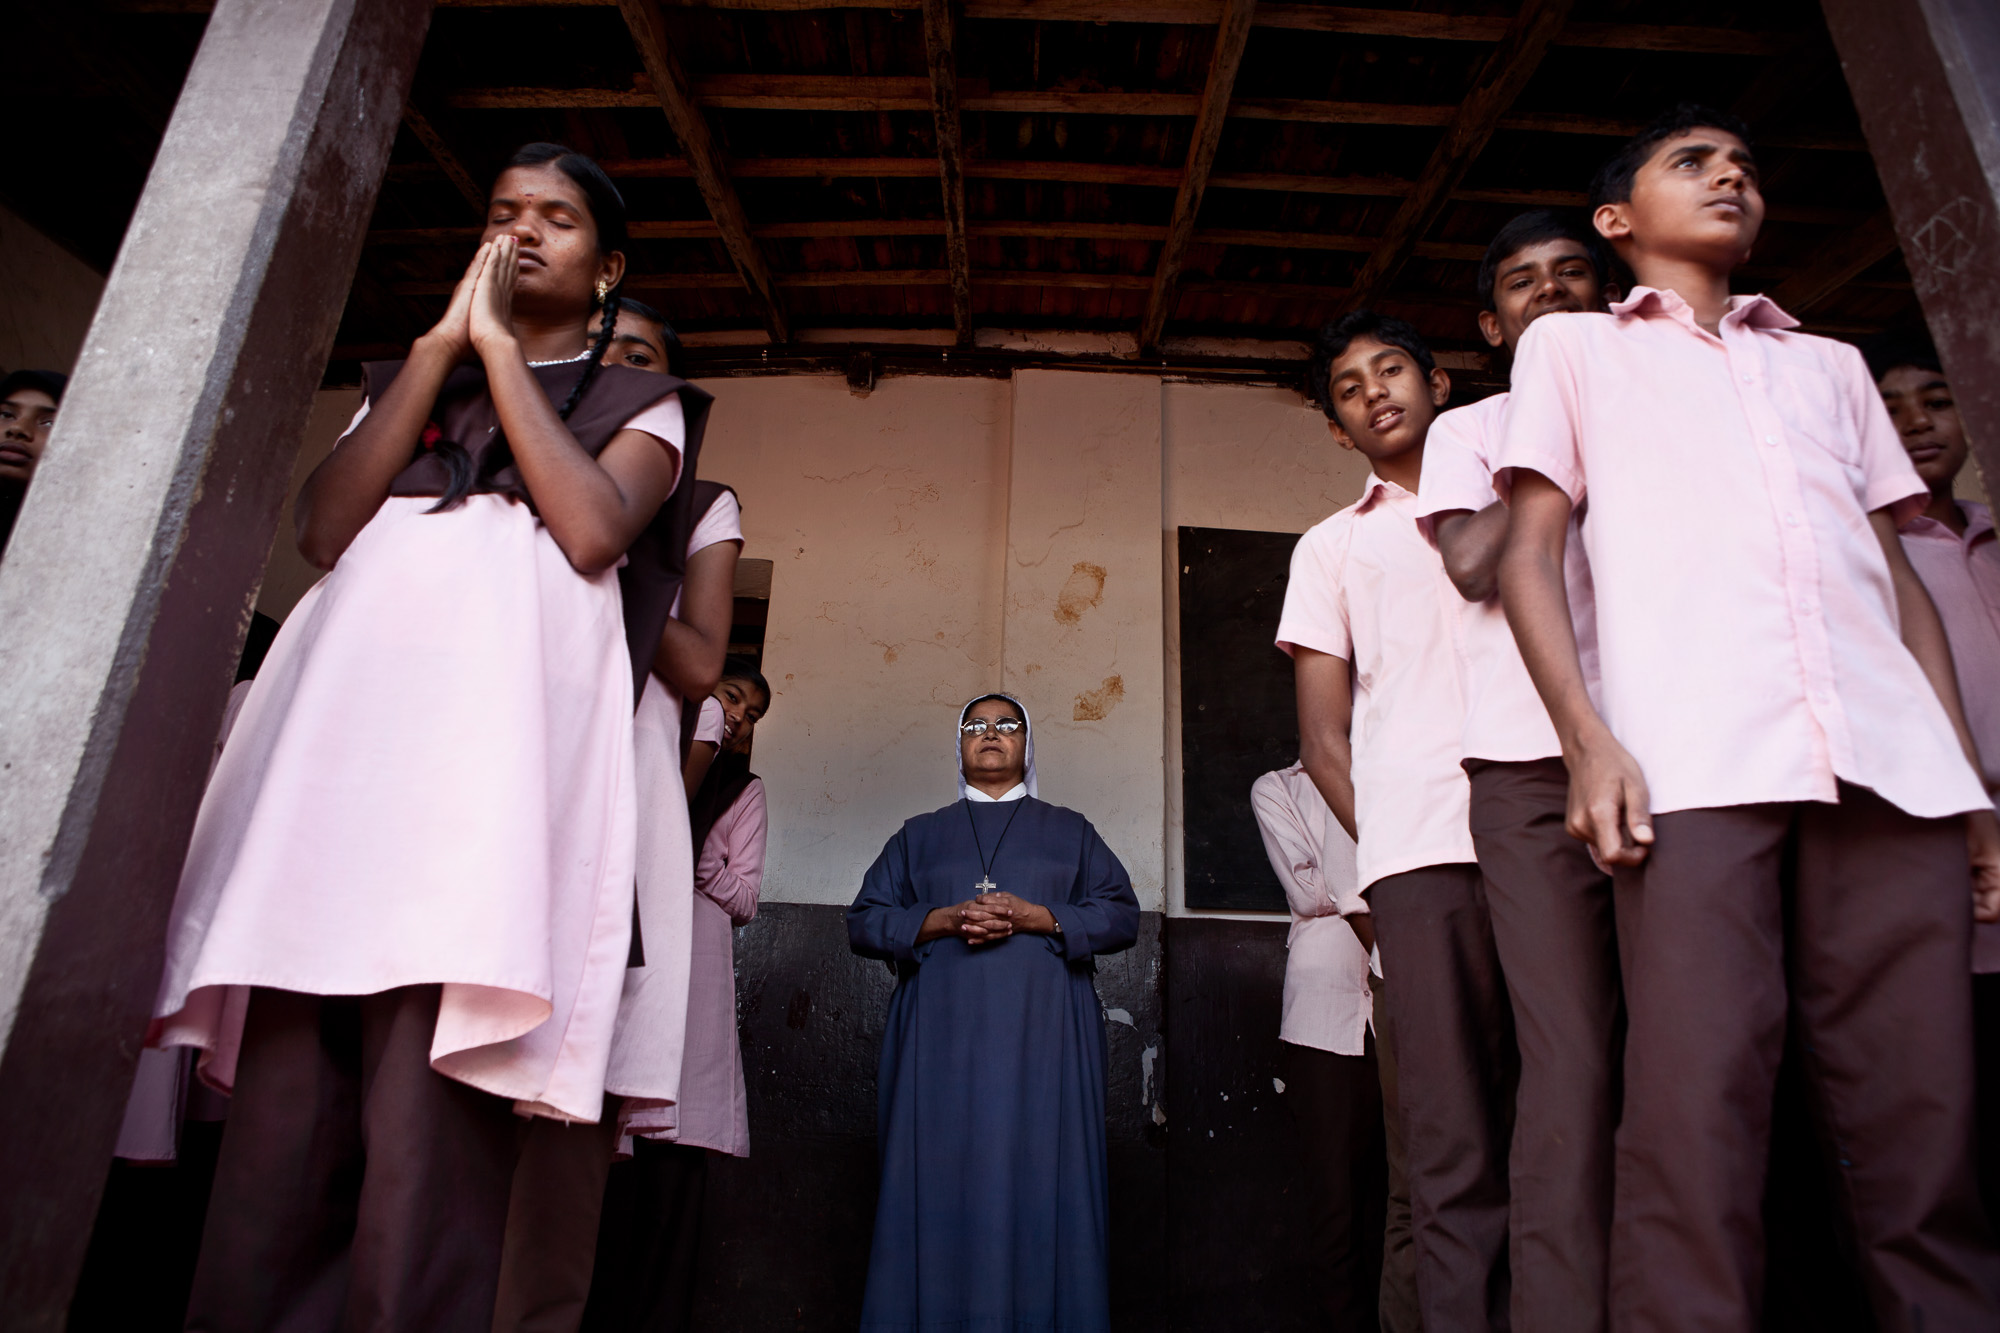 "Children of the 9th Standard class at the Roman Catholic High School, undertake the daily pledge for education during the morning assembly. The state of Kerala passed in 2002 ""The Right to Education Act"" where all children between the age of 6 years and 14 years must be in full time education.  Although the population is split 50% Hindu, 25% Christian and 25% Muslim most children, regardless of their religion are taught together."